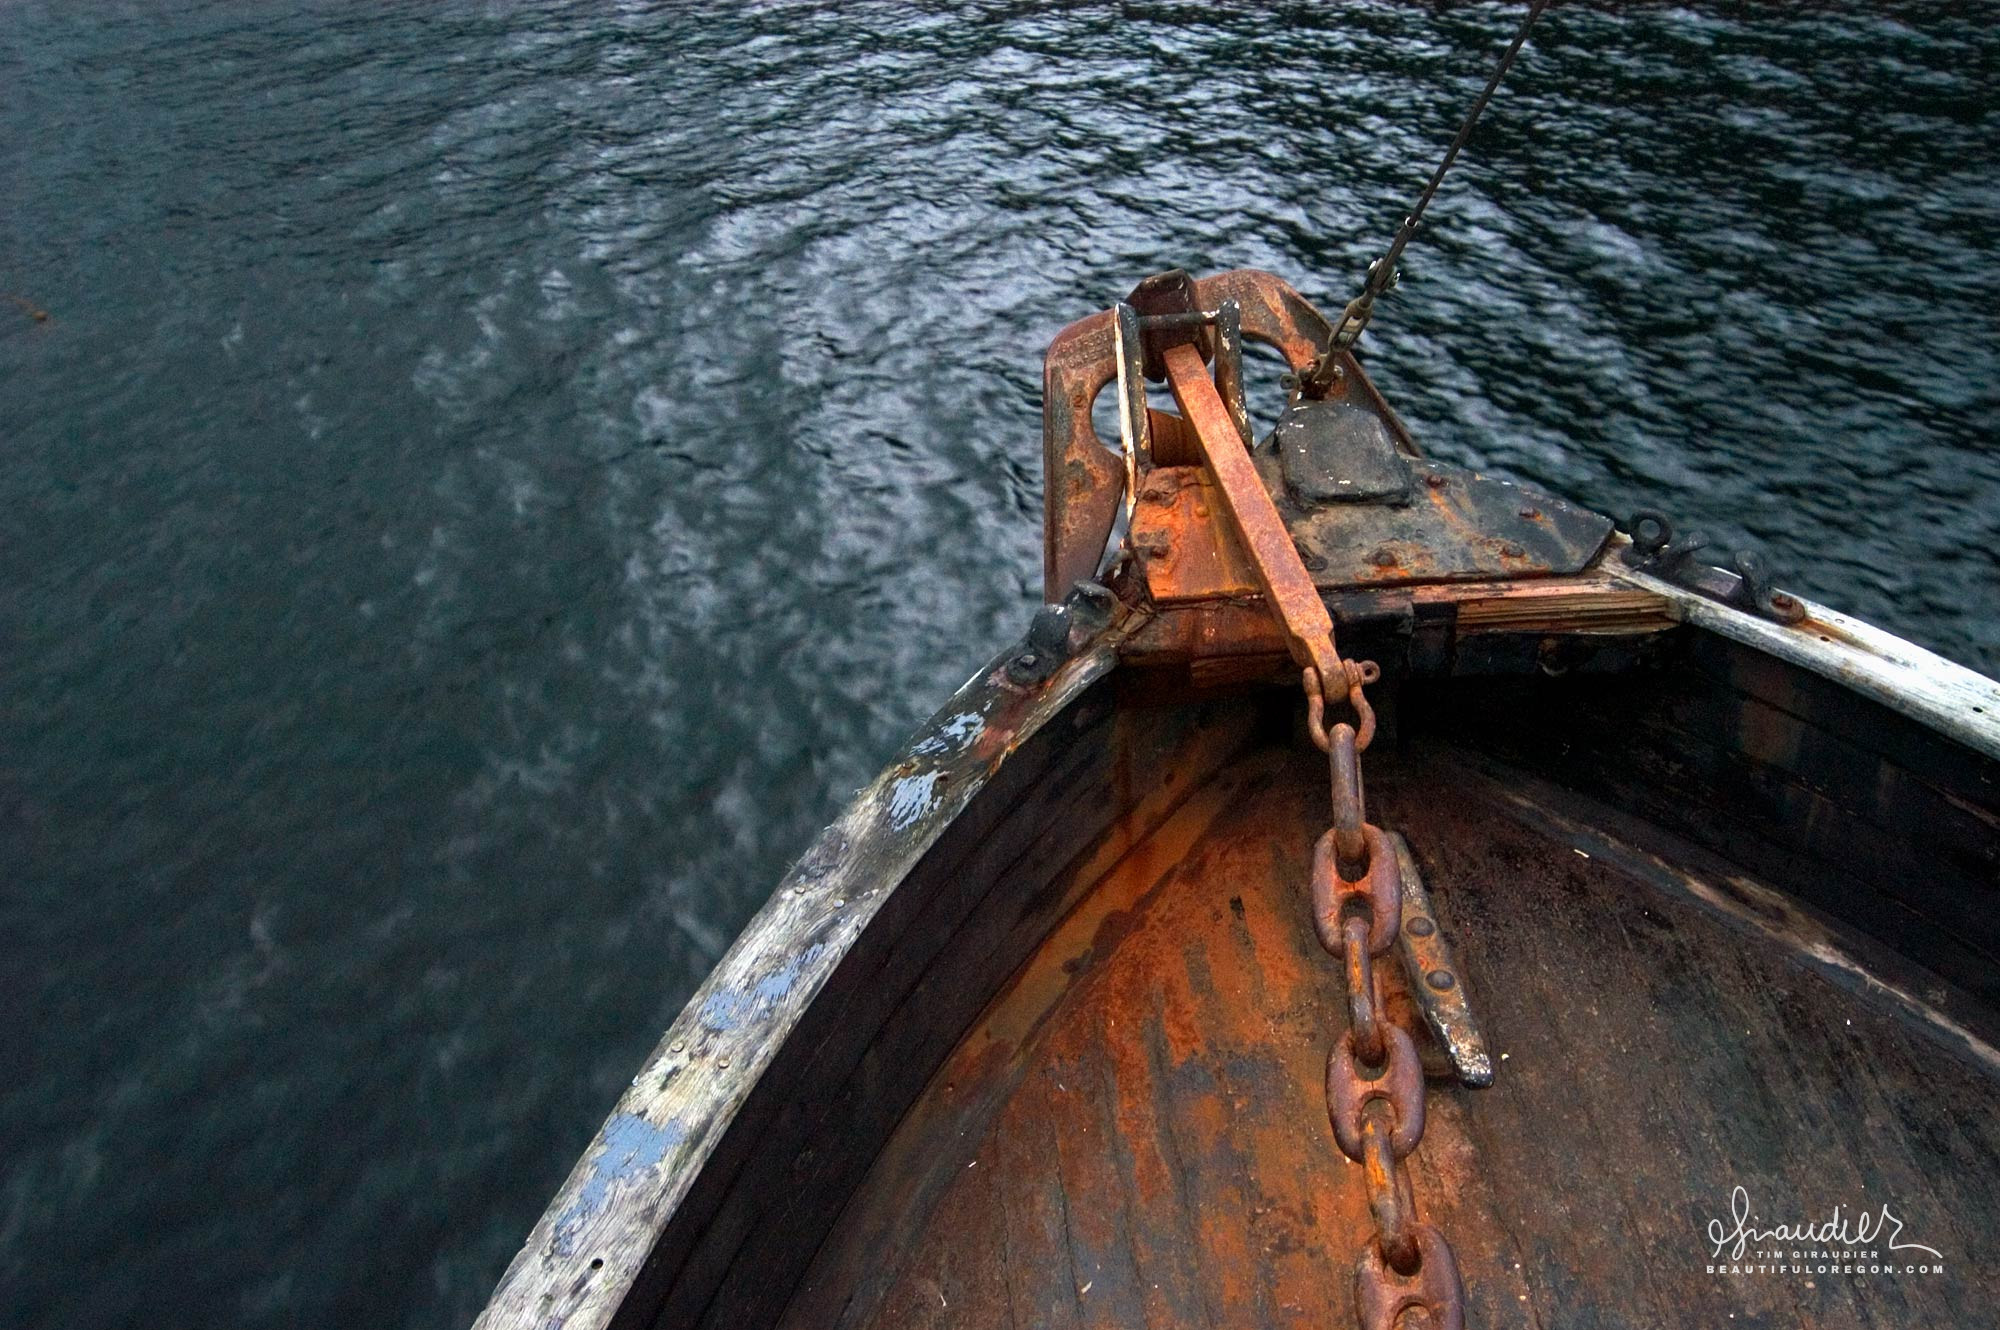 Anchor and chain melting into foredeck. Southeast Alaska salmon troll fishery